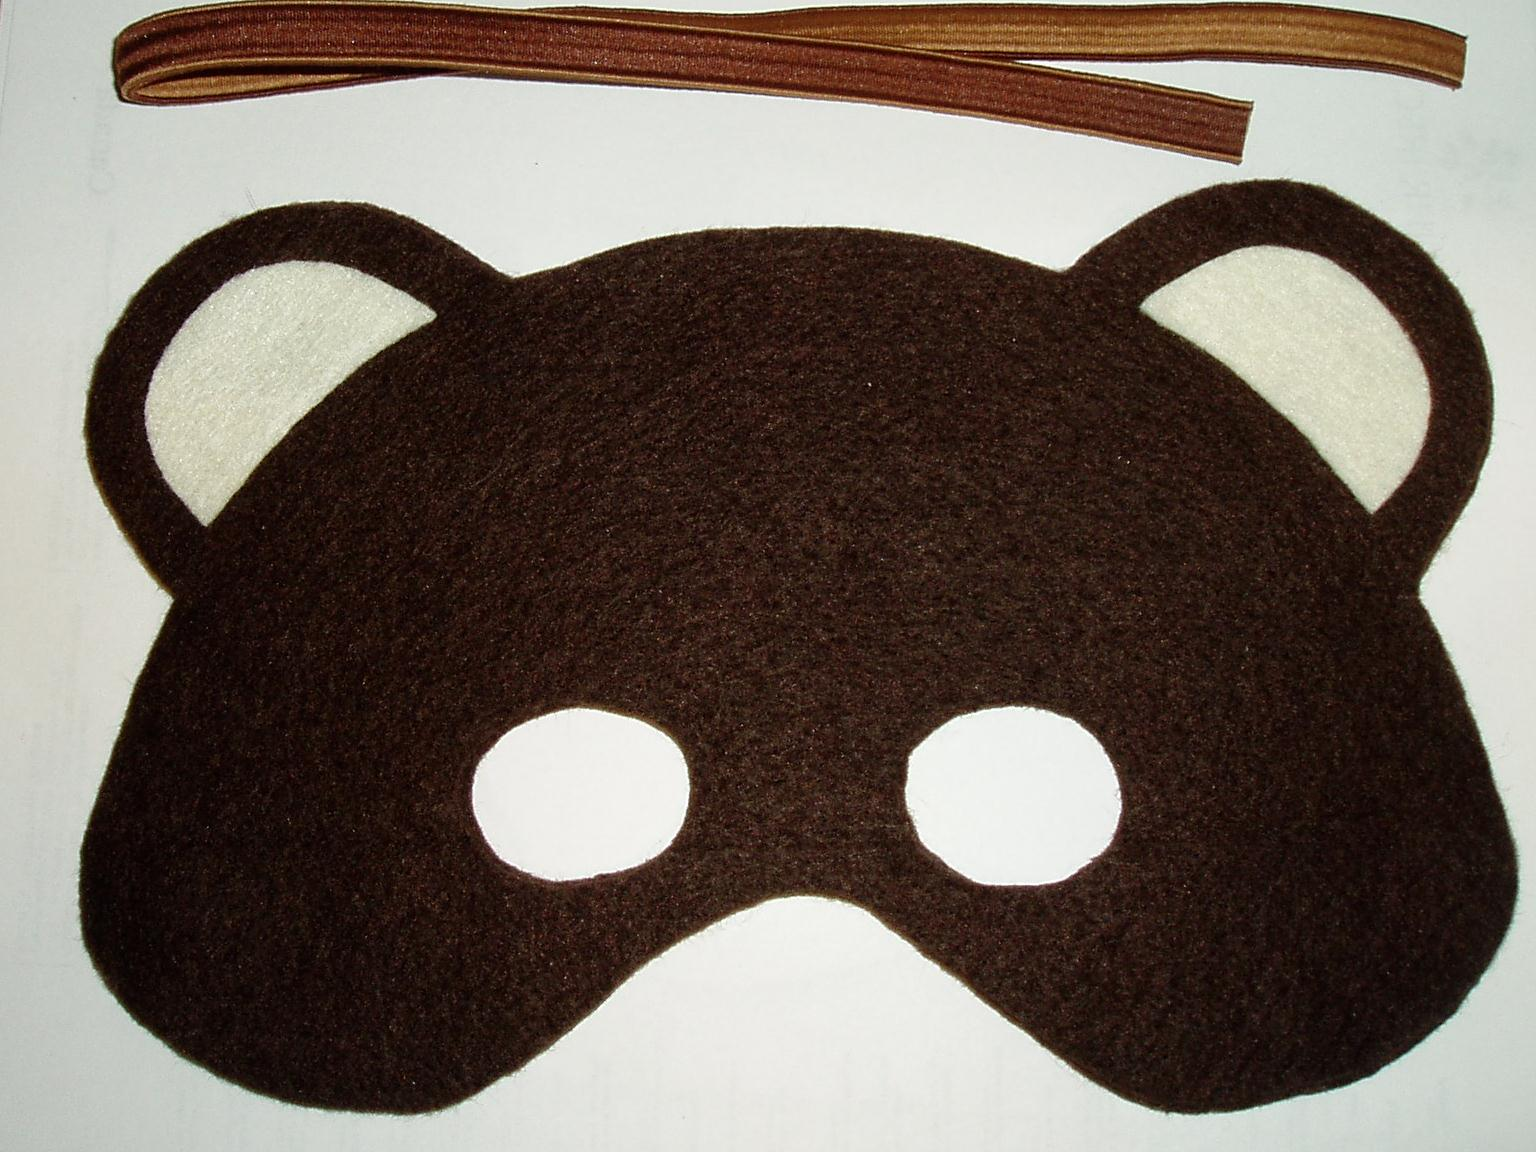 Bear Mask Templates http://slairslair.blogspot.com/2011/11/felt-bear-mask-tutorial-pattern.html